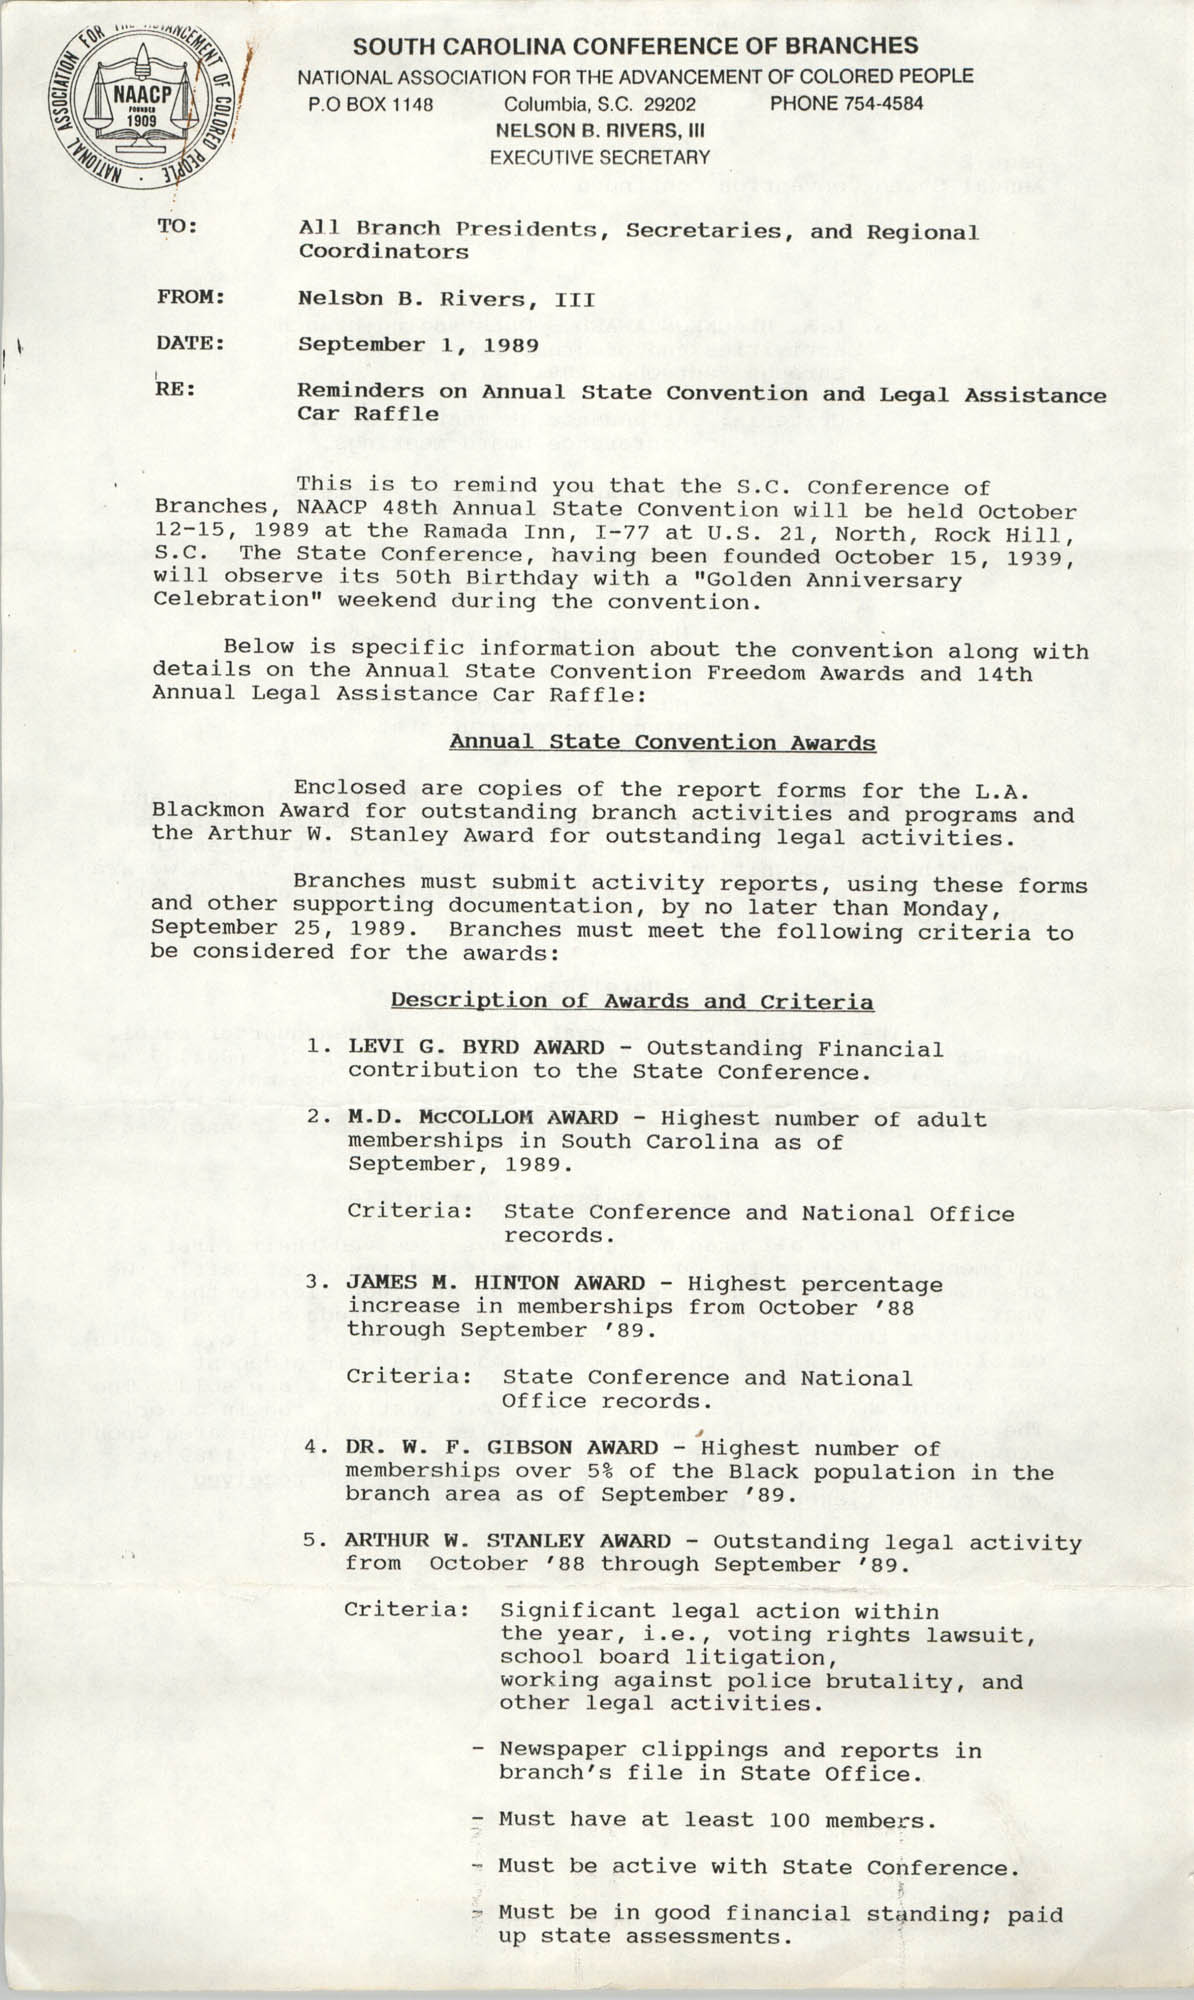 South Carolina Conference of Branches of the NAACP Memorandum, September 1, 1989